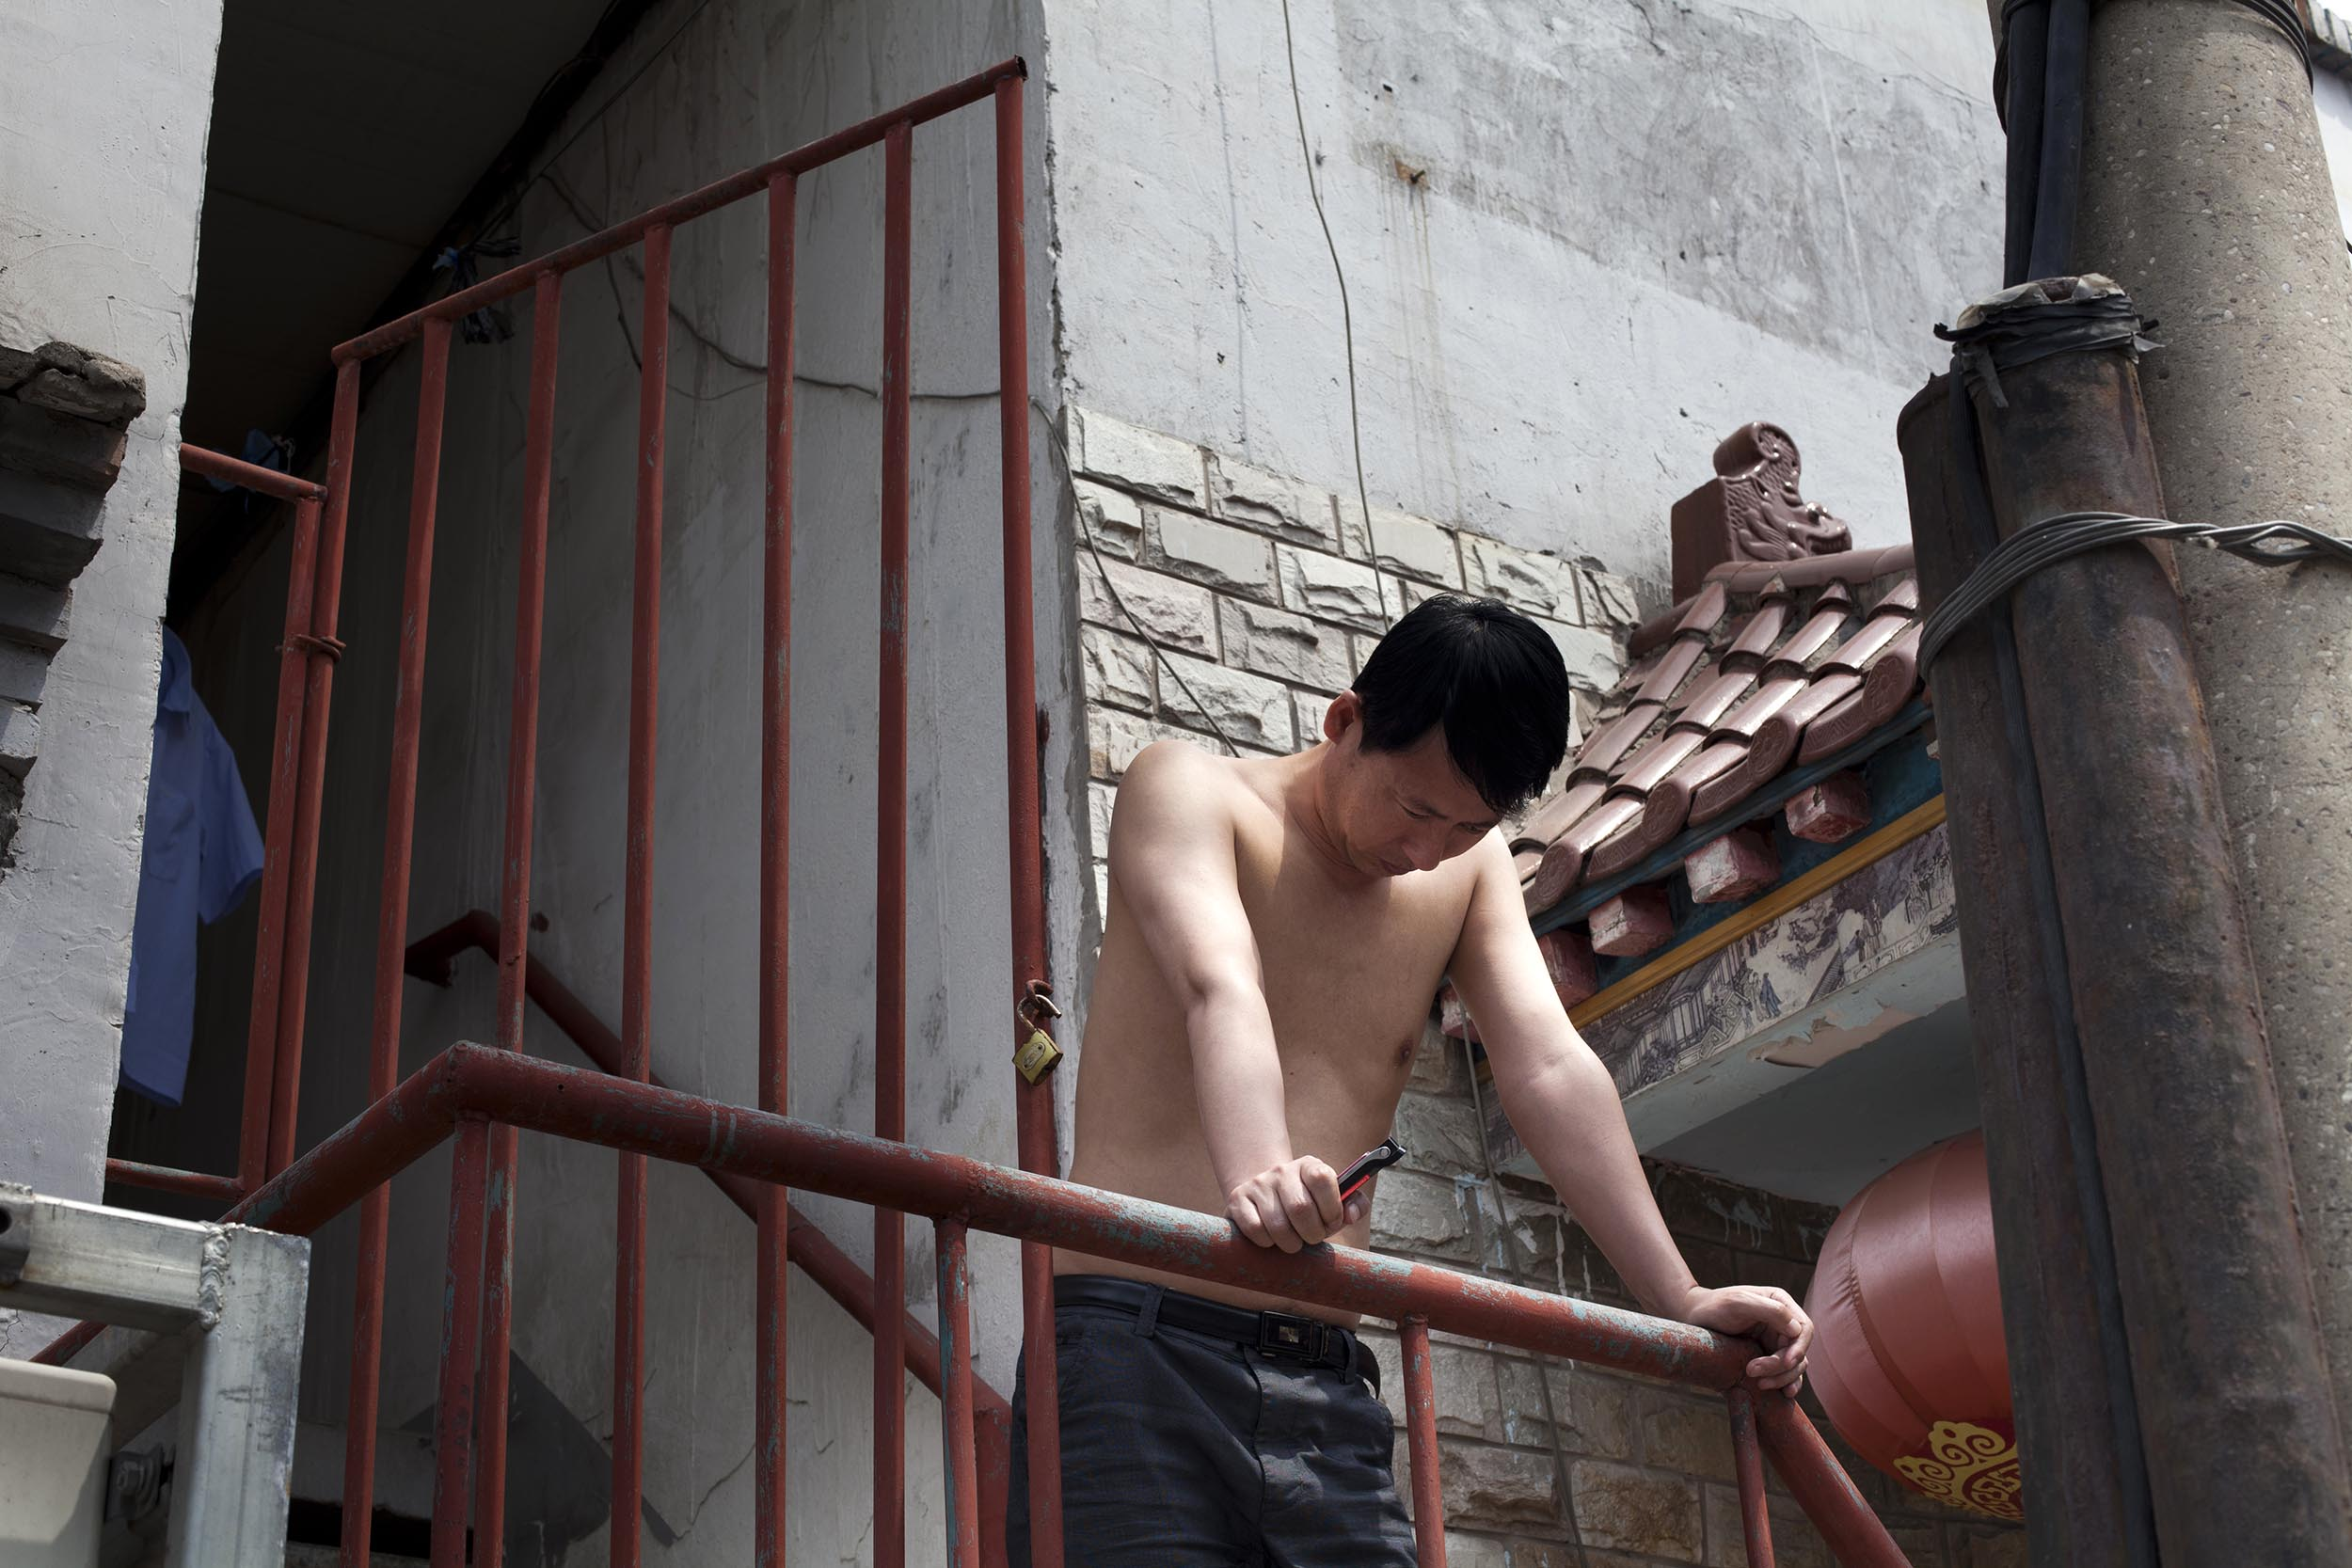 A photograph of a young man on balcony in Beijing, China  Photography for Beijing Government